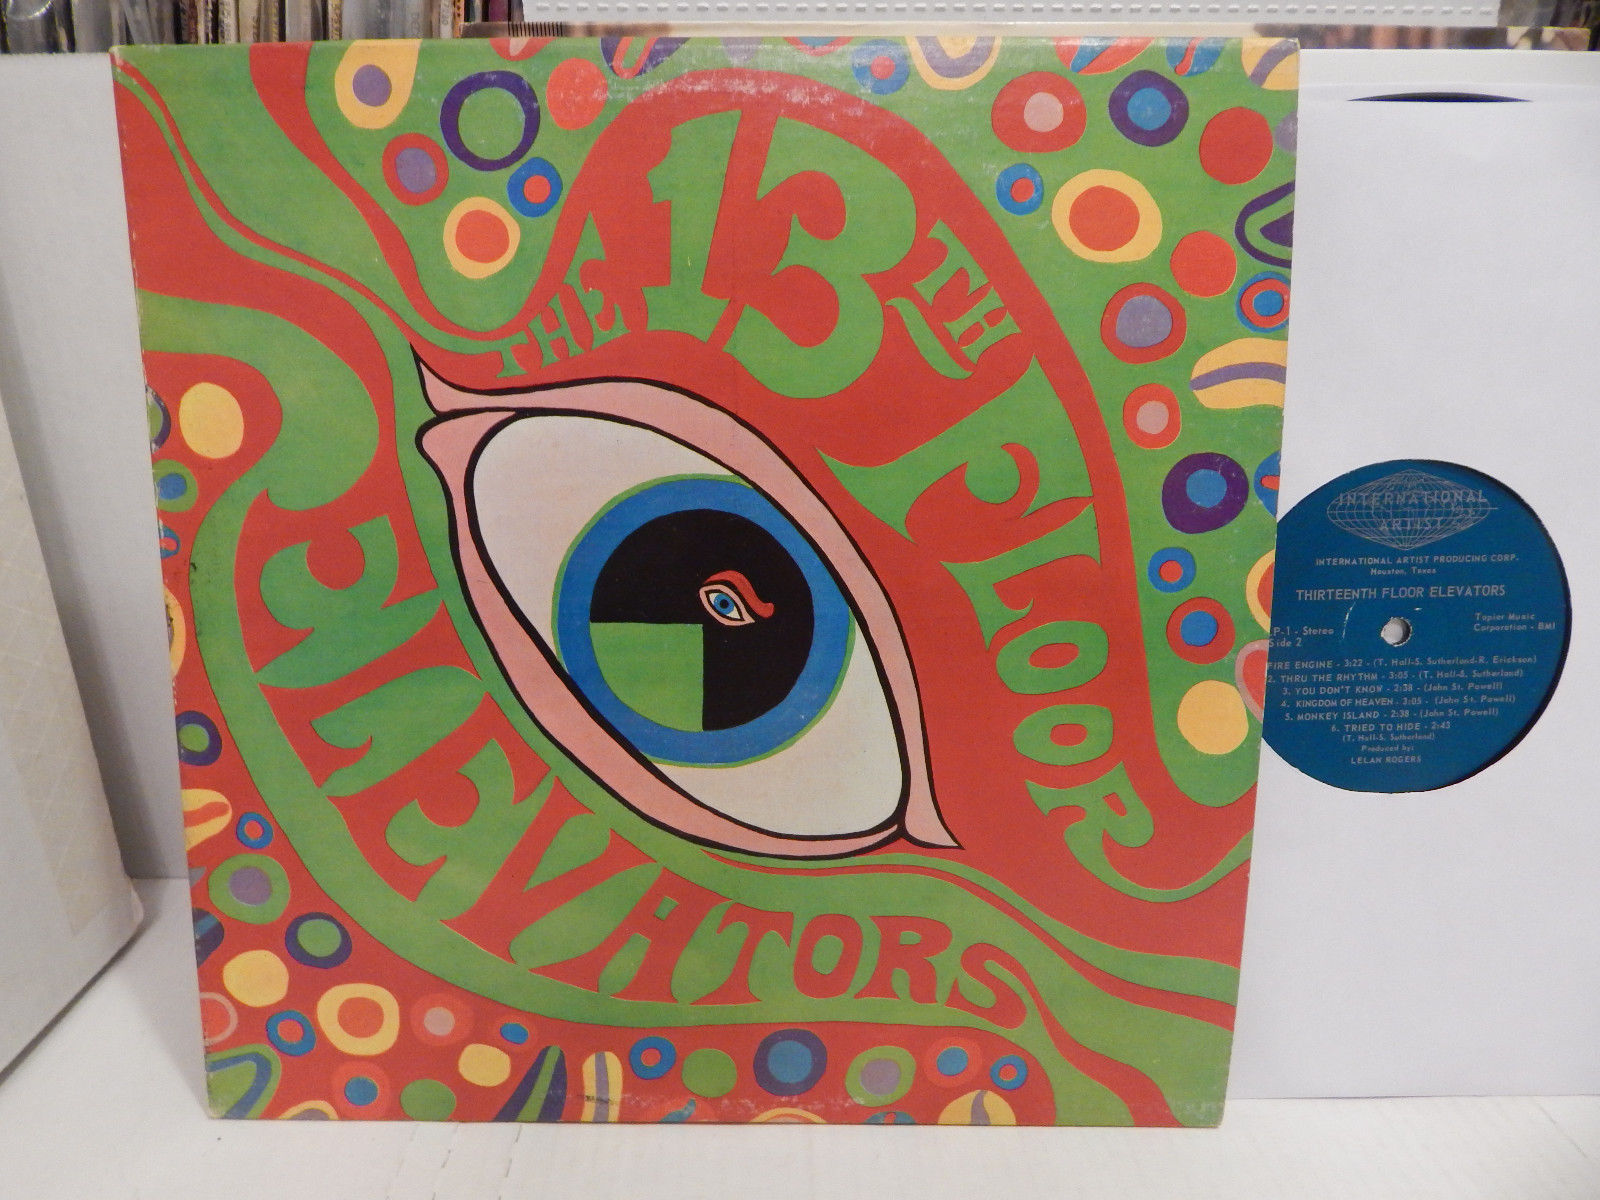 13th Floor Elevators Psychedelic Sounds International First Stereo PR 1A No1 LP